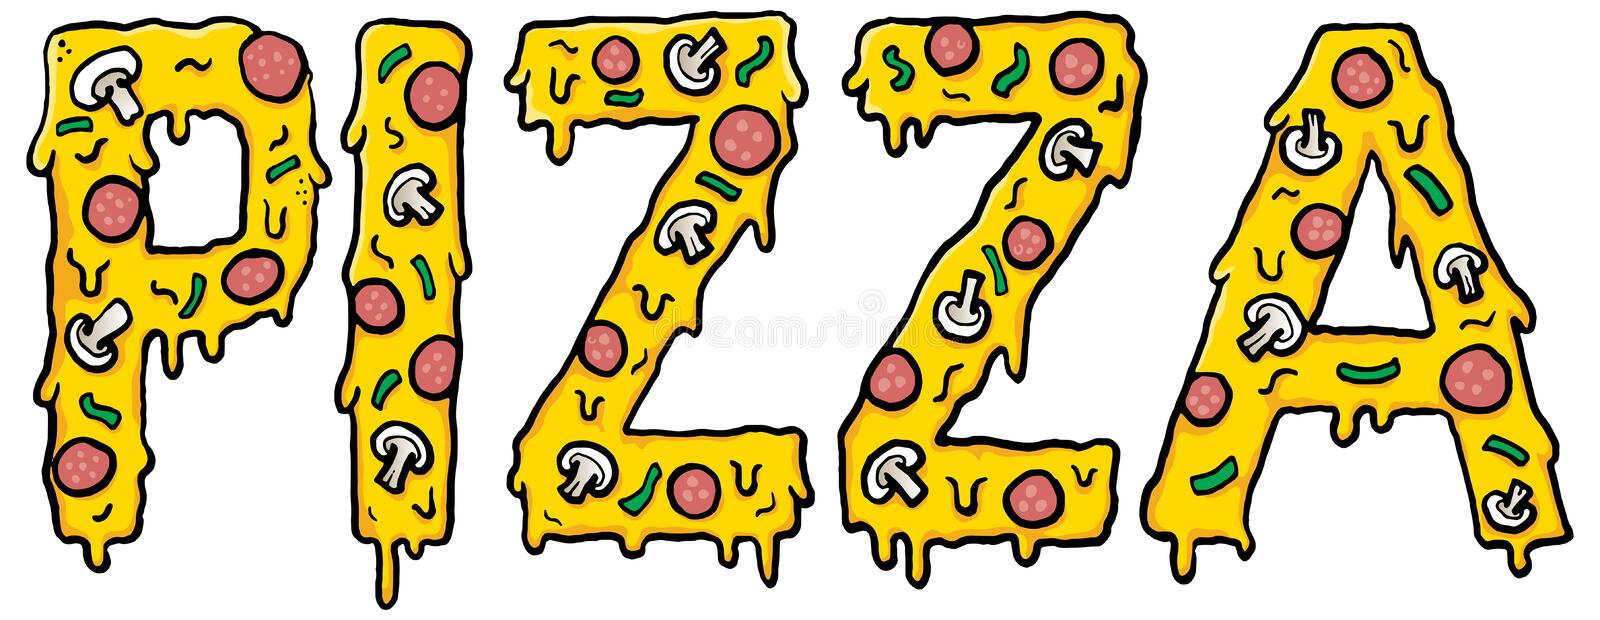 Everyone loves Pizza! royalty free illustration